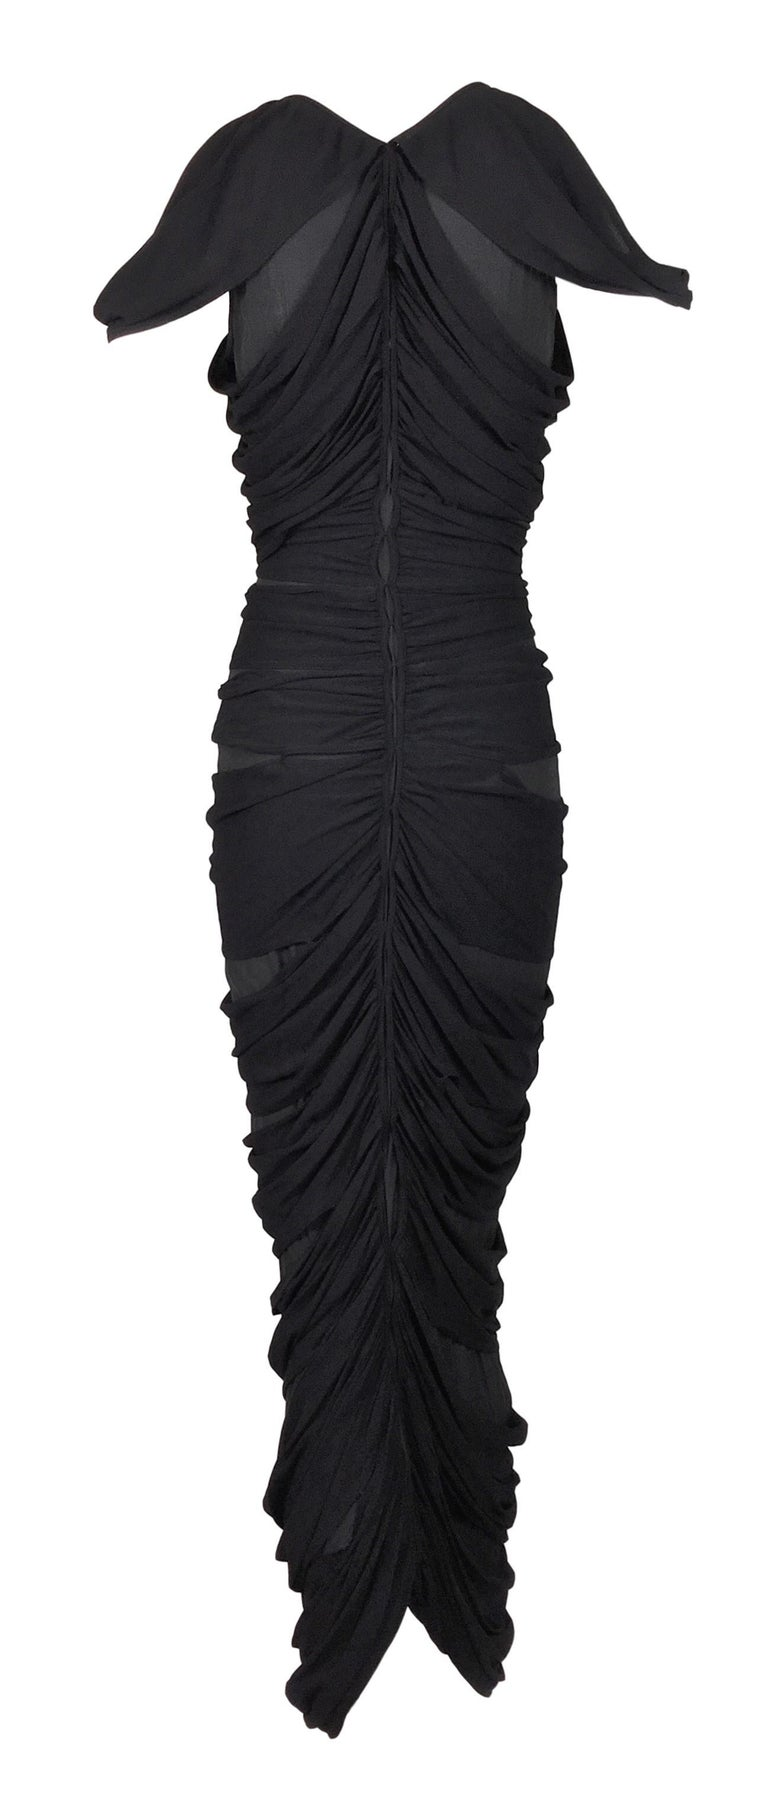 S/S 2003 Yves Saint Laurent Tom Ford Sheer Black Mummy Wrap Cut-Out Dress In Good Condition In Yukon, OK